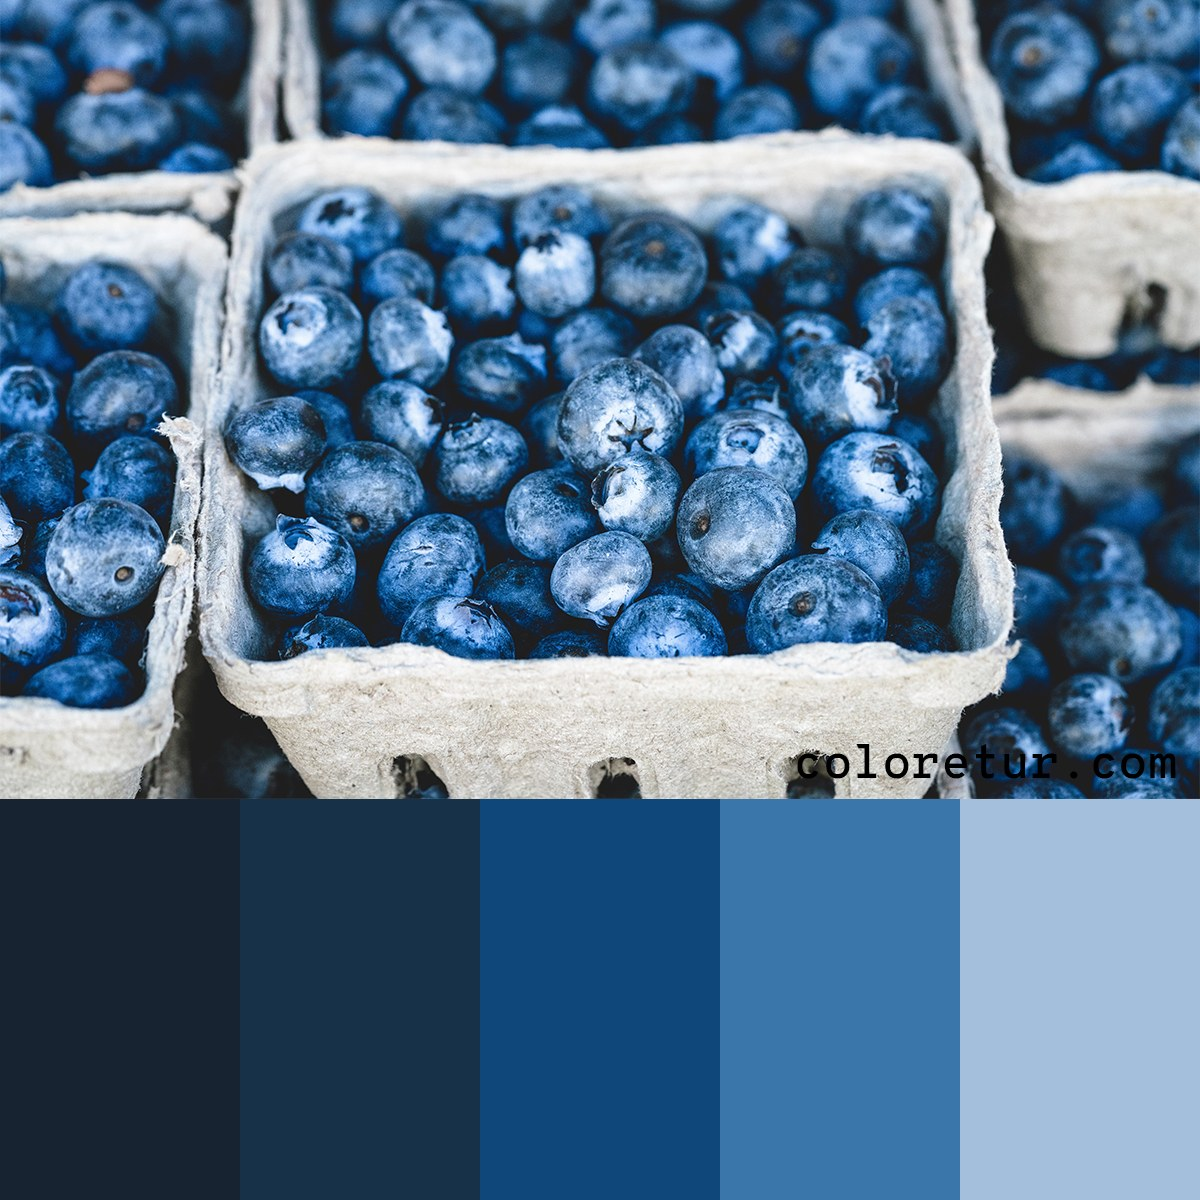 Deep, blue tones from blueberries stacked in punnets